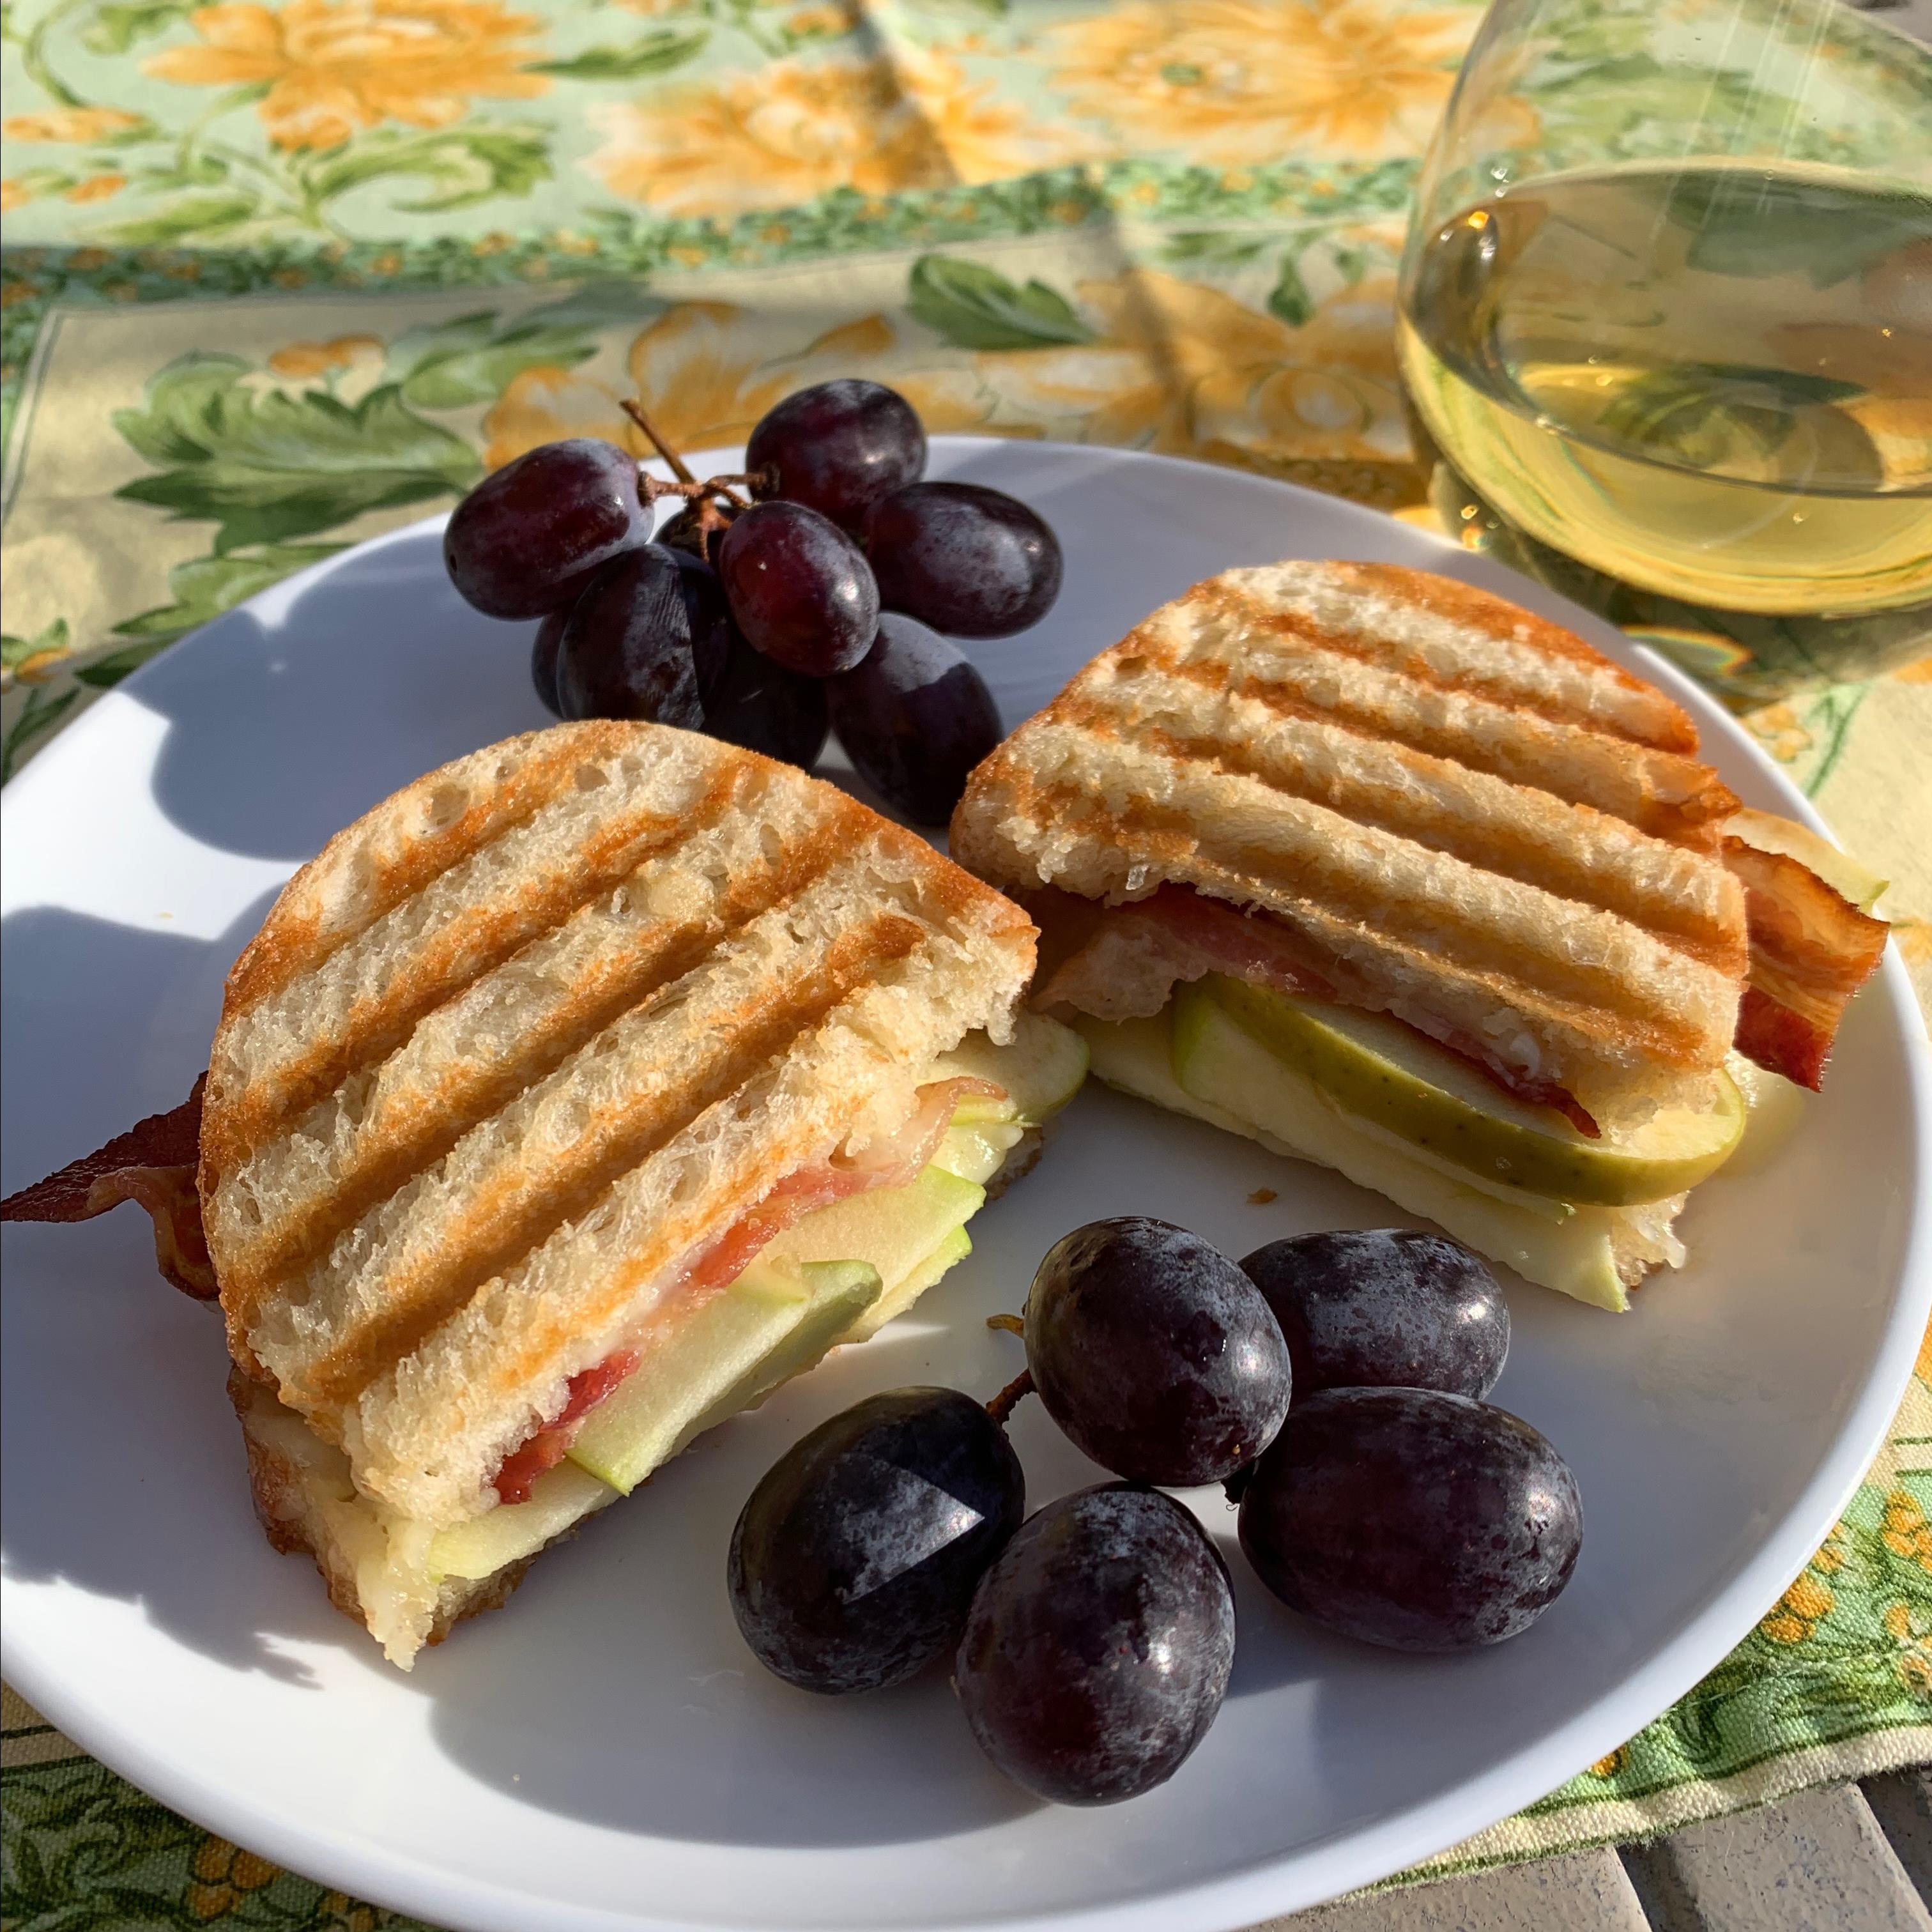 Bacon, Apple and Brie Panini